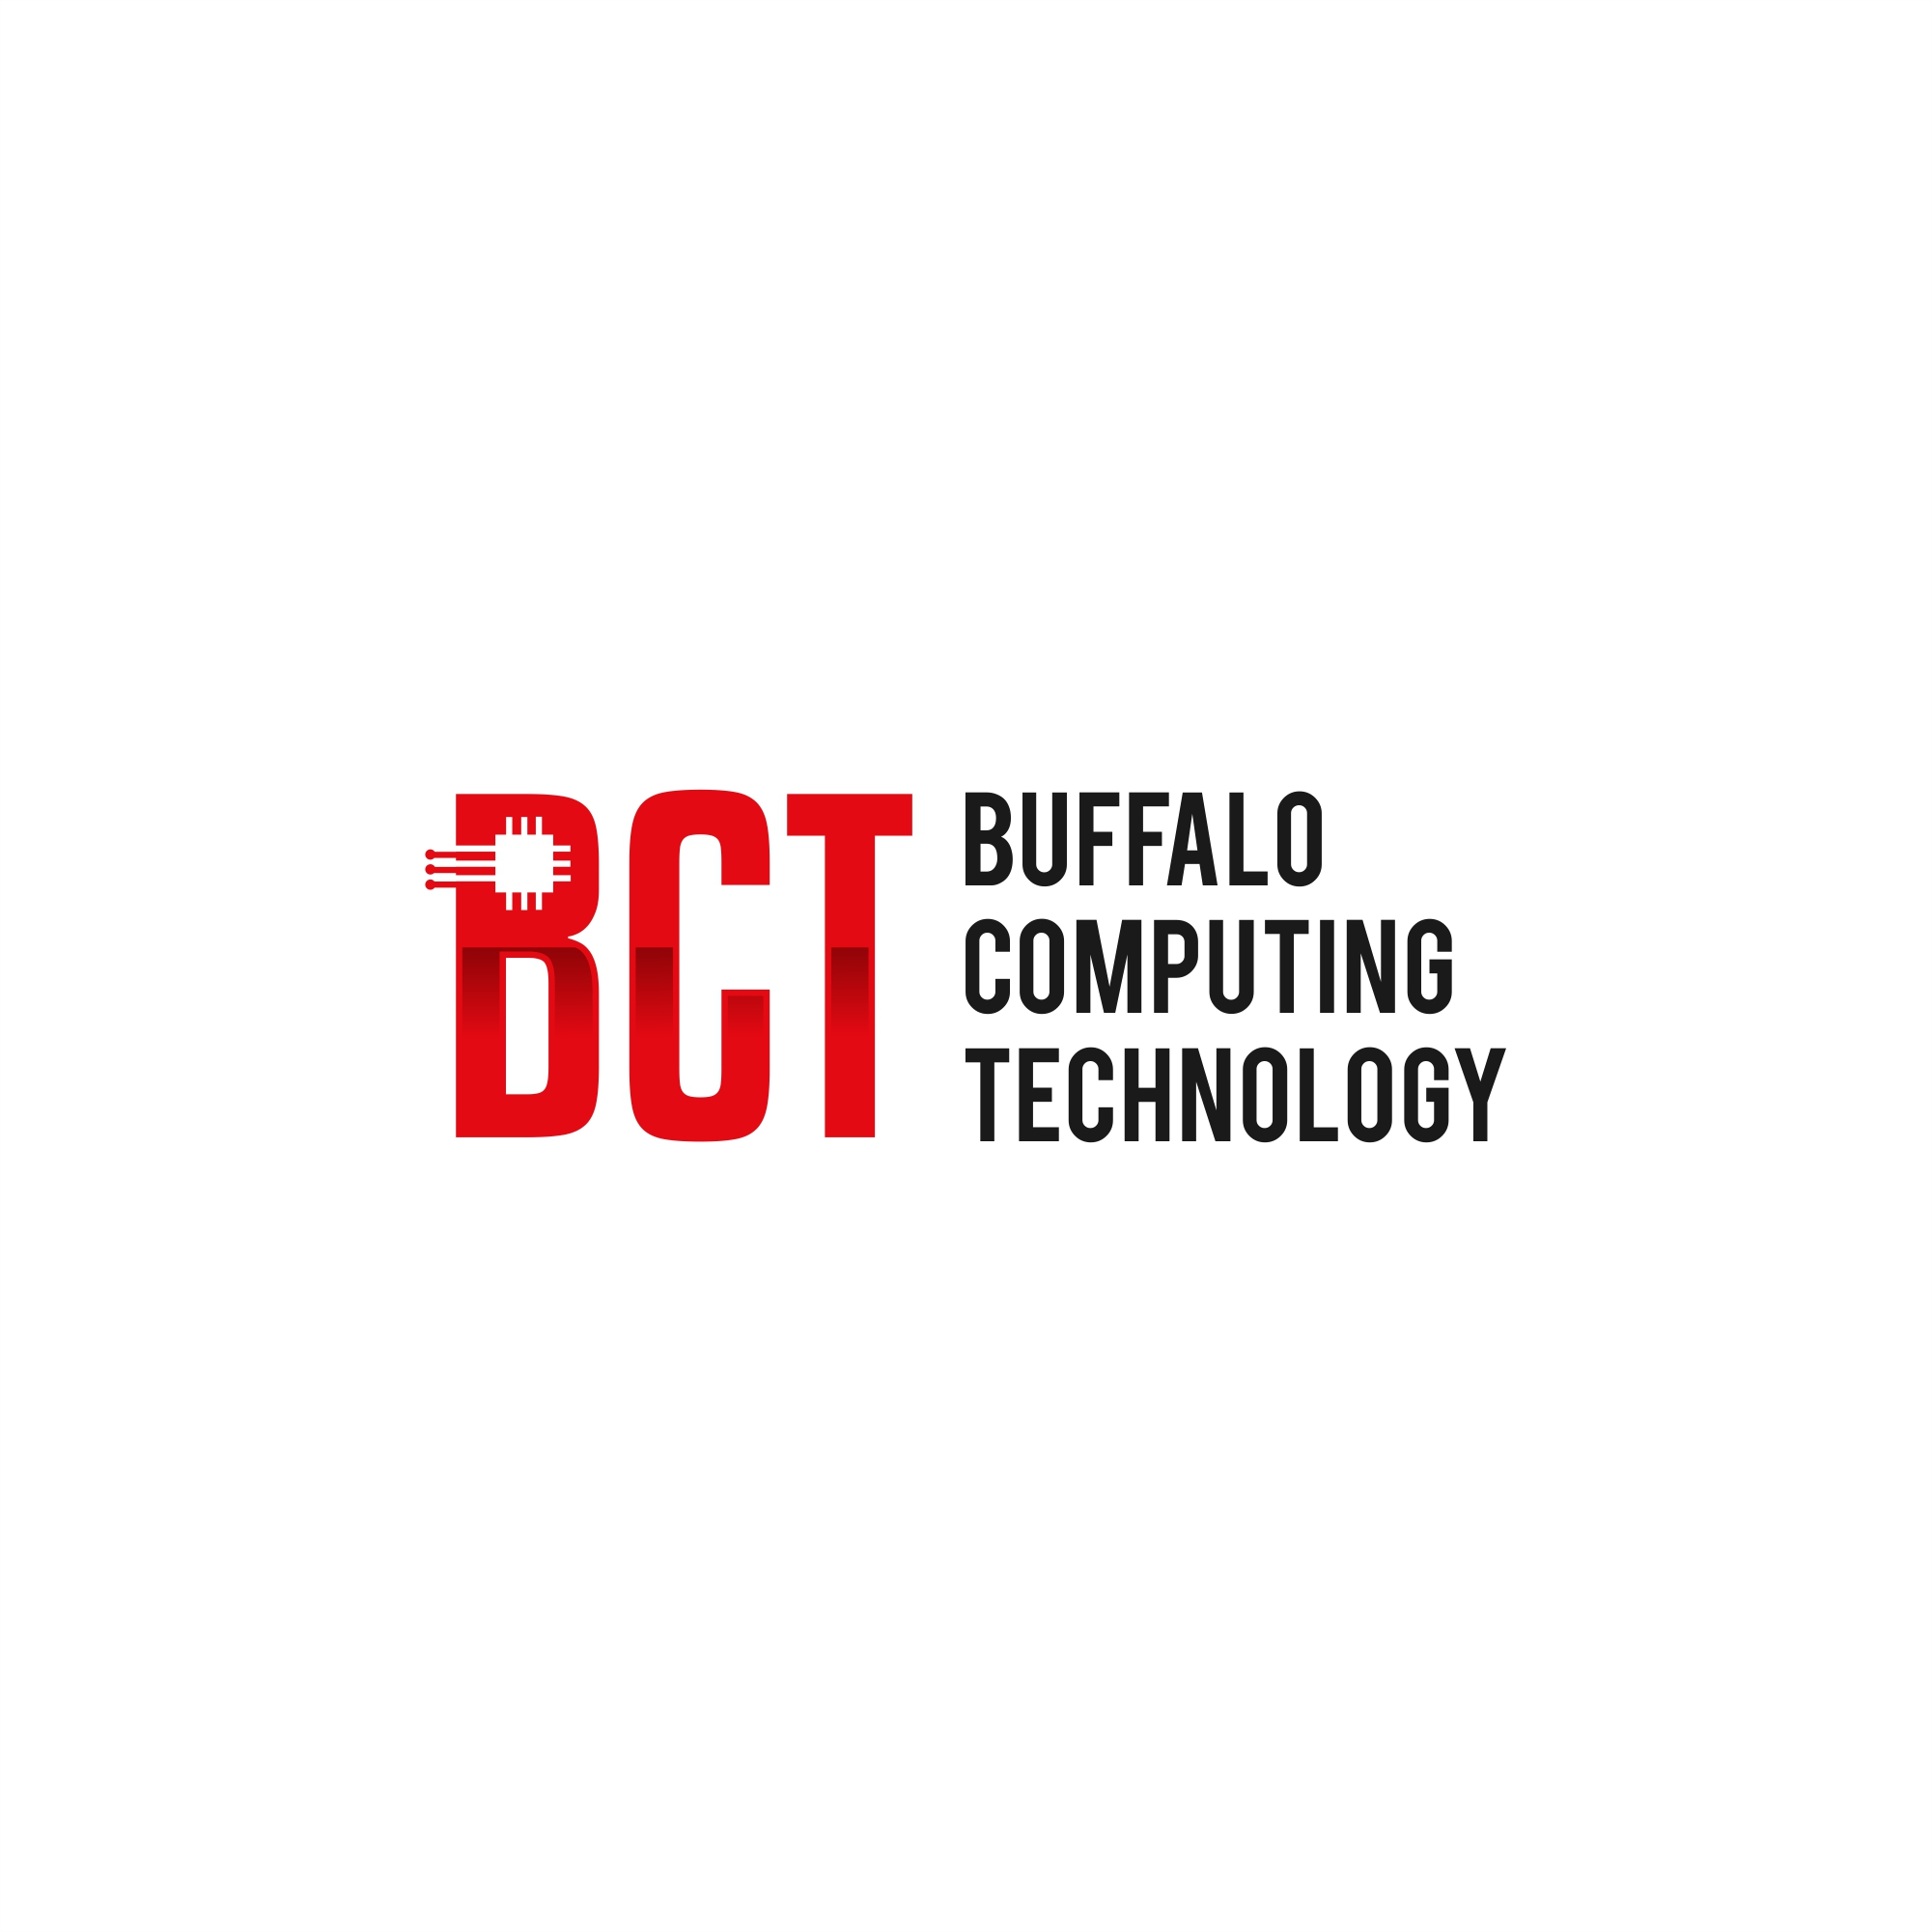 TAG Global Systems announces Buffalo Computing Technology as a new Certified Partner